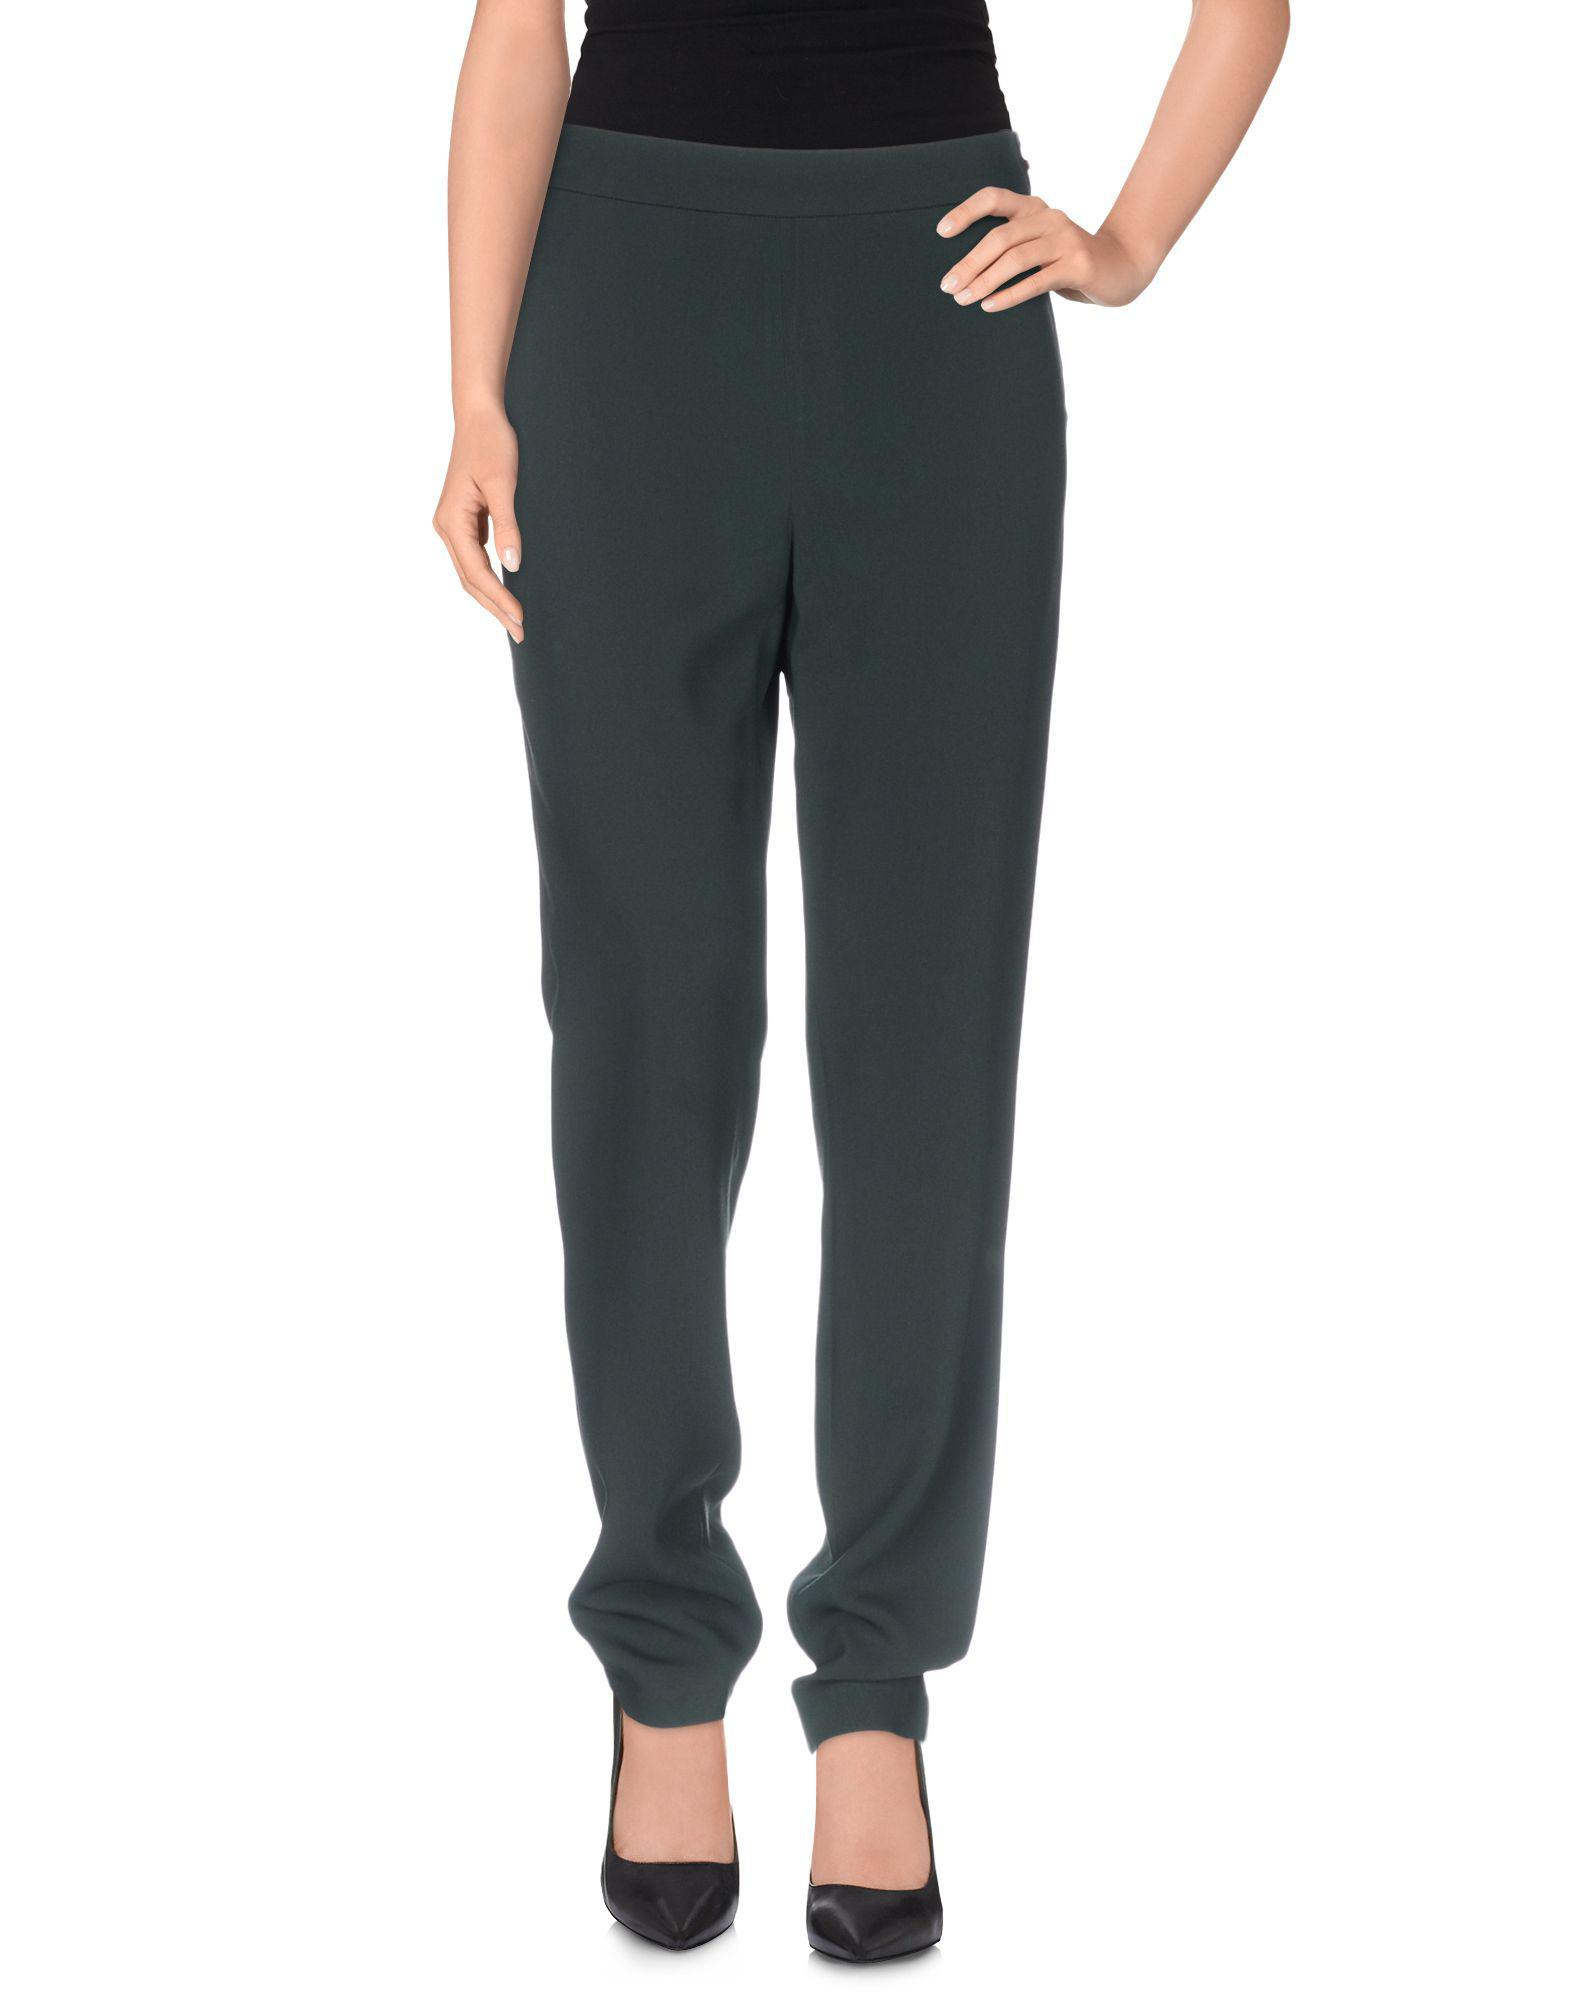 TROUSERS - Casual trousers Cedric Charlier Discount Pictures 9uAth0fs